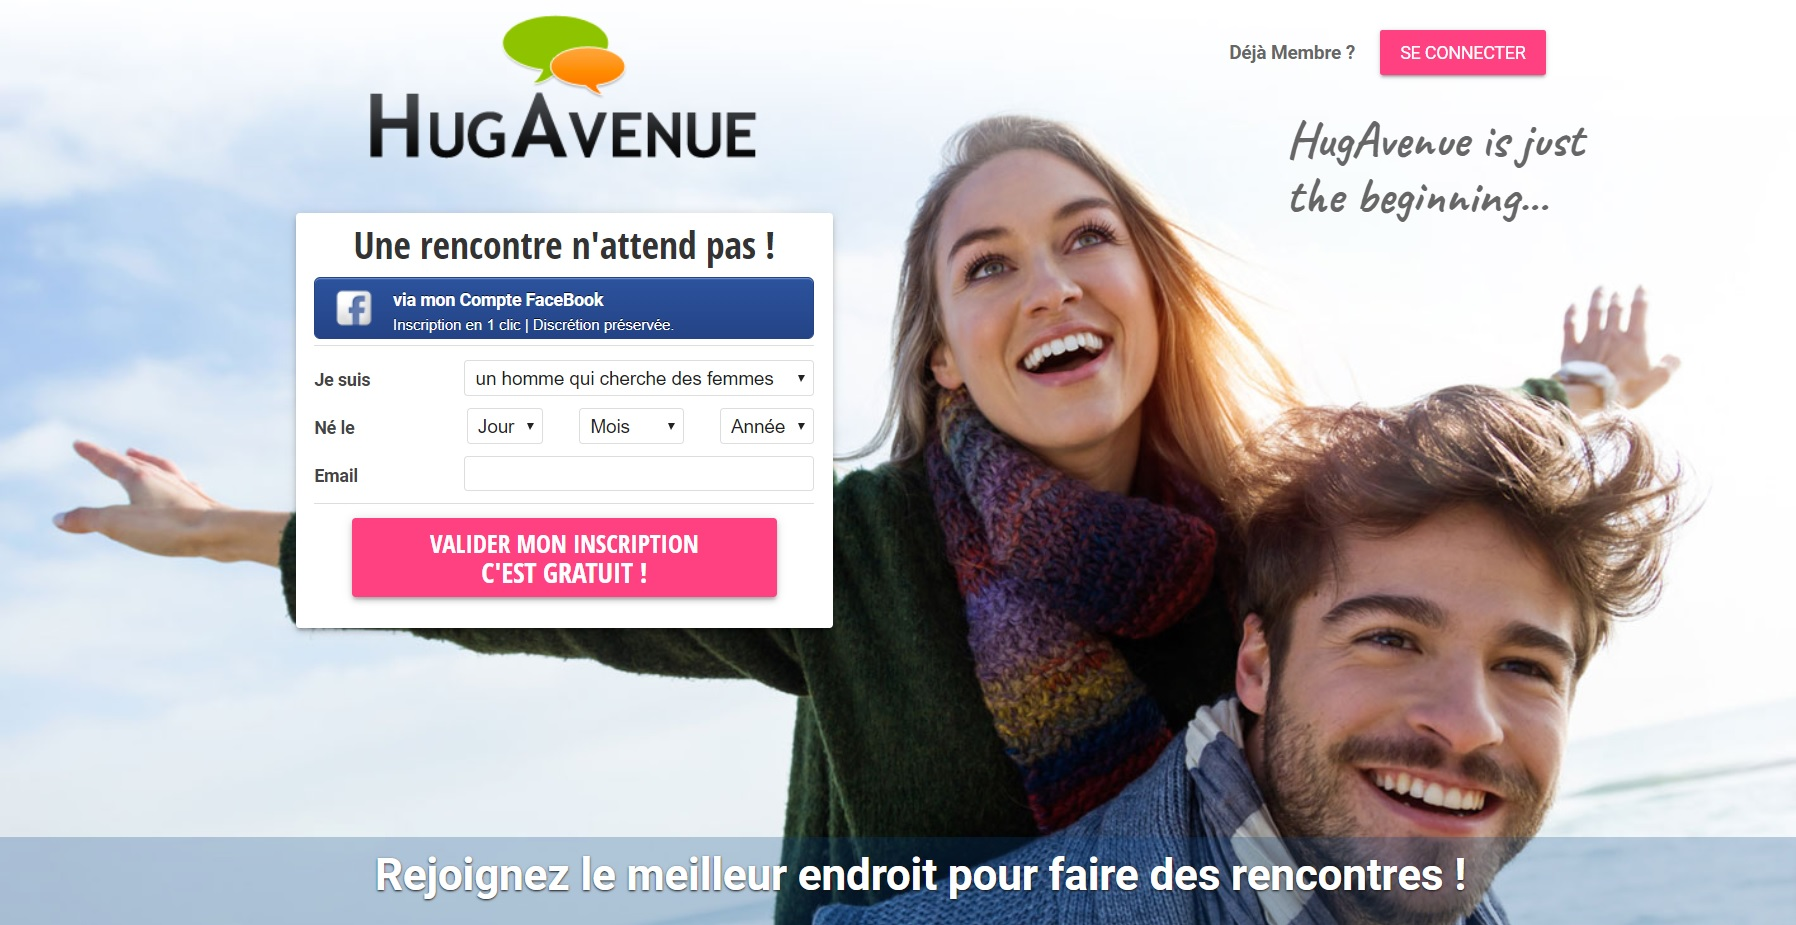 Site de rencontre HugAvenue